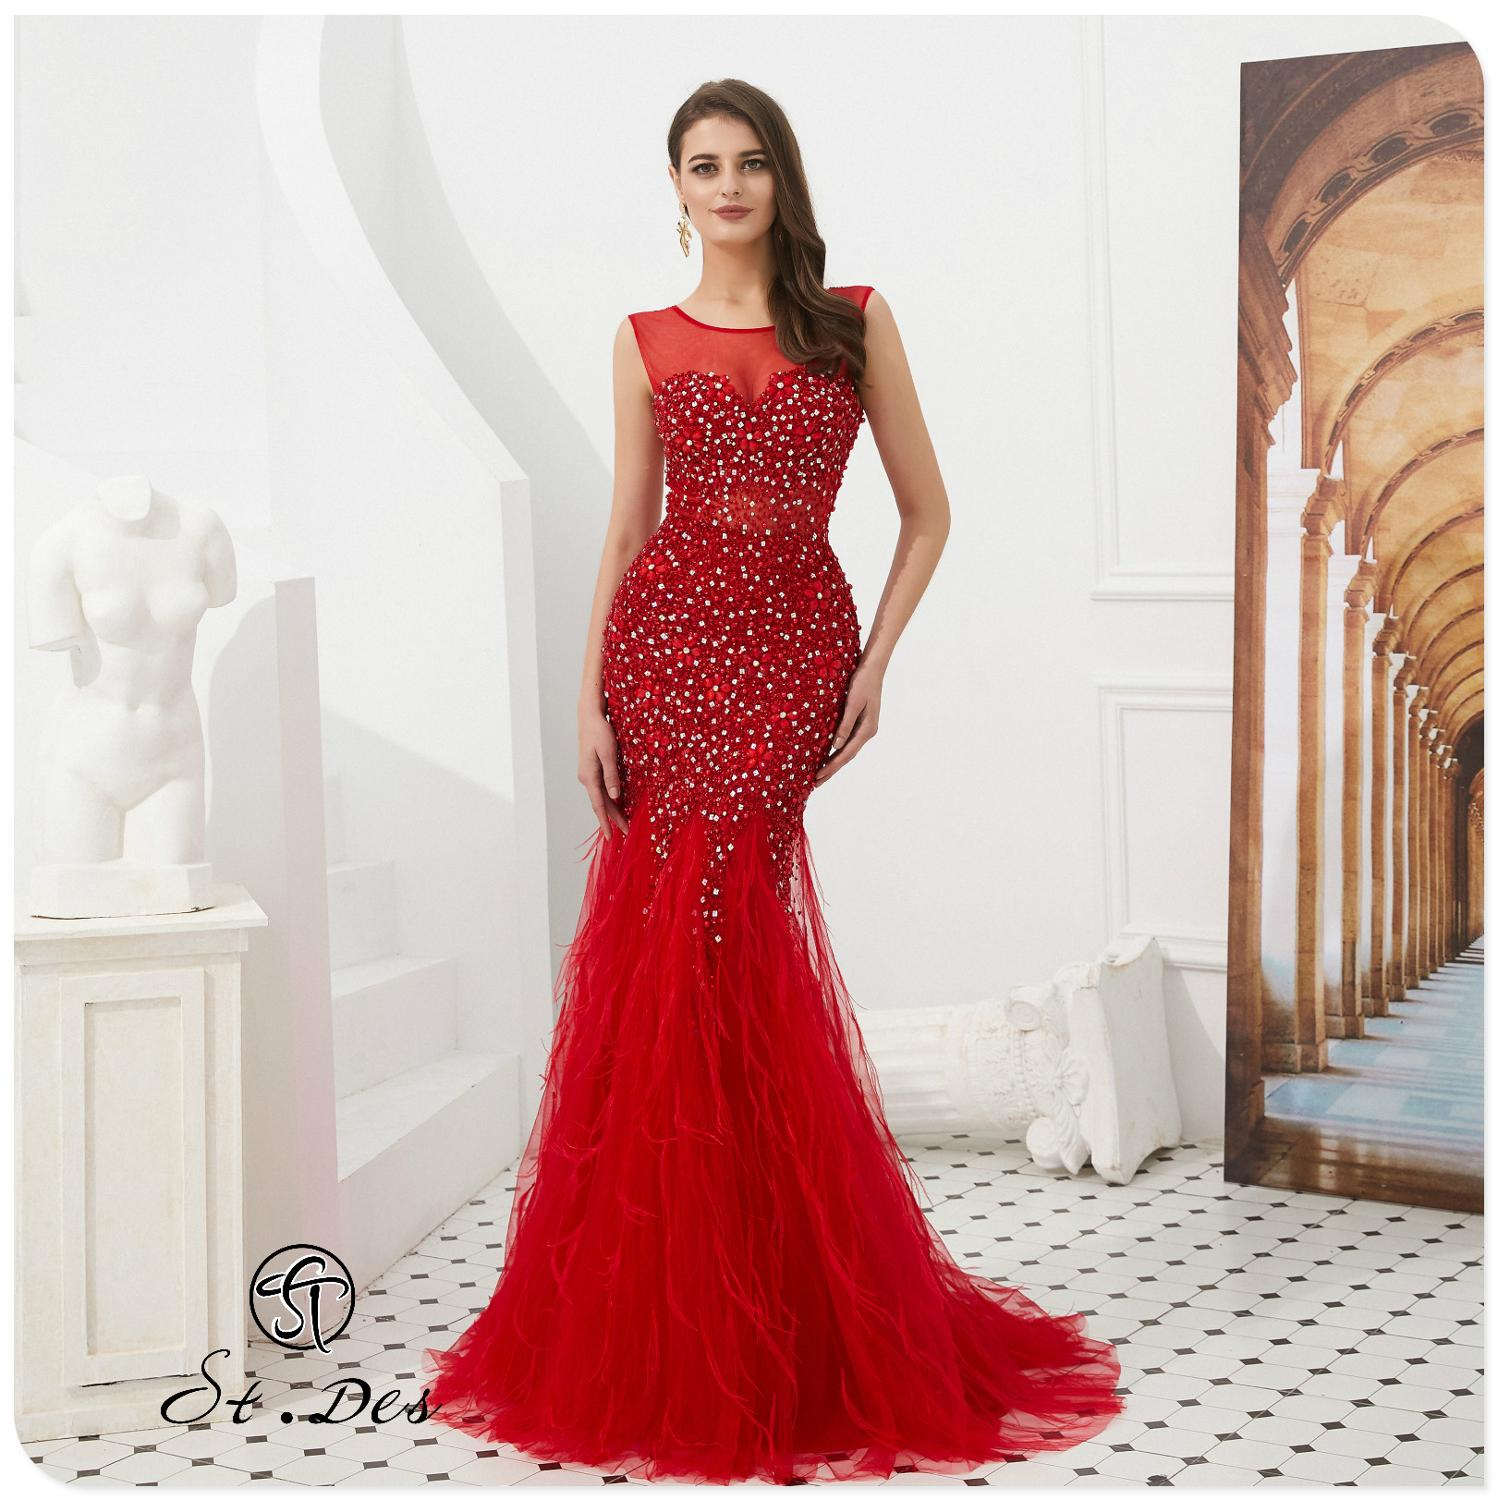 NEW Arrival 2020 St.Des Mermaid O-Neck Red Long Sleeve Russian Sequins Designer FloorLength Evening Dress Party Dress Party Gown